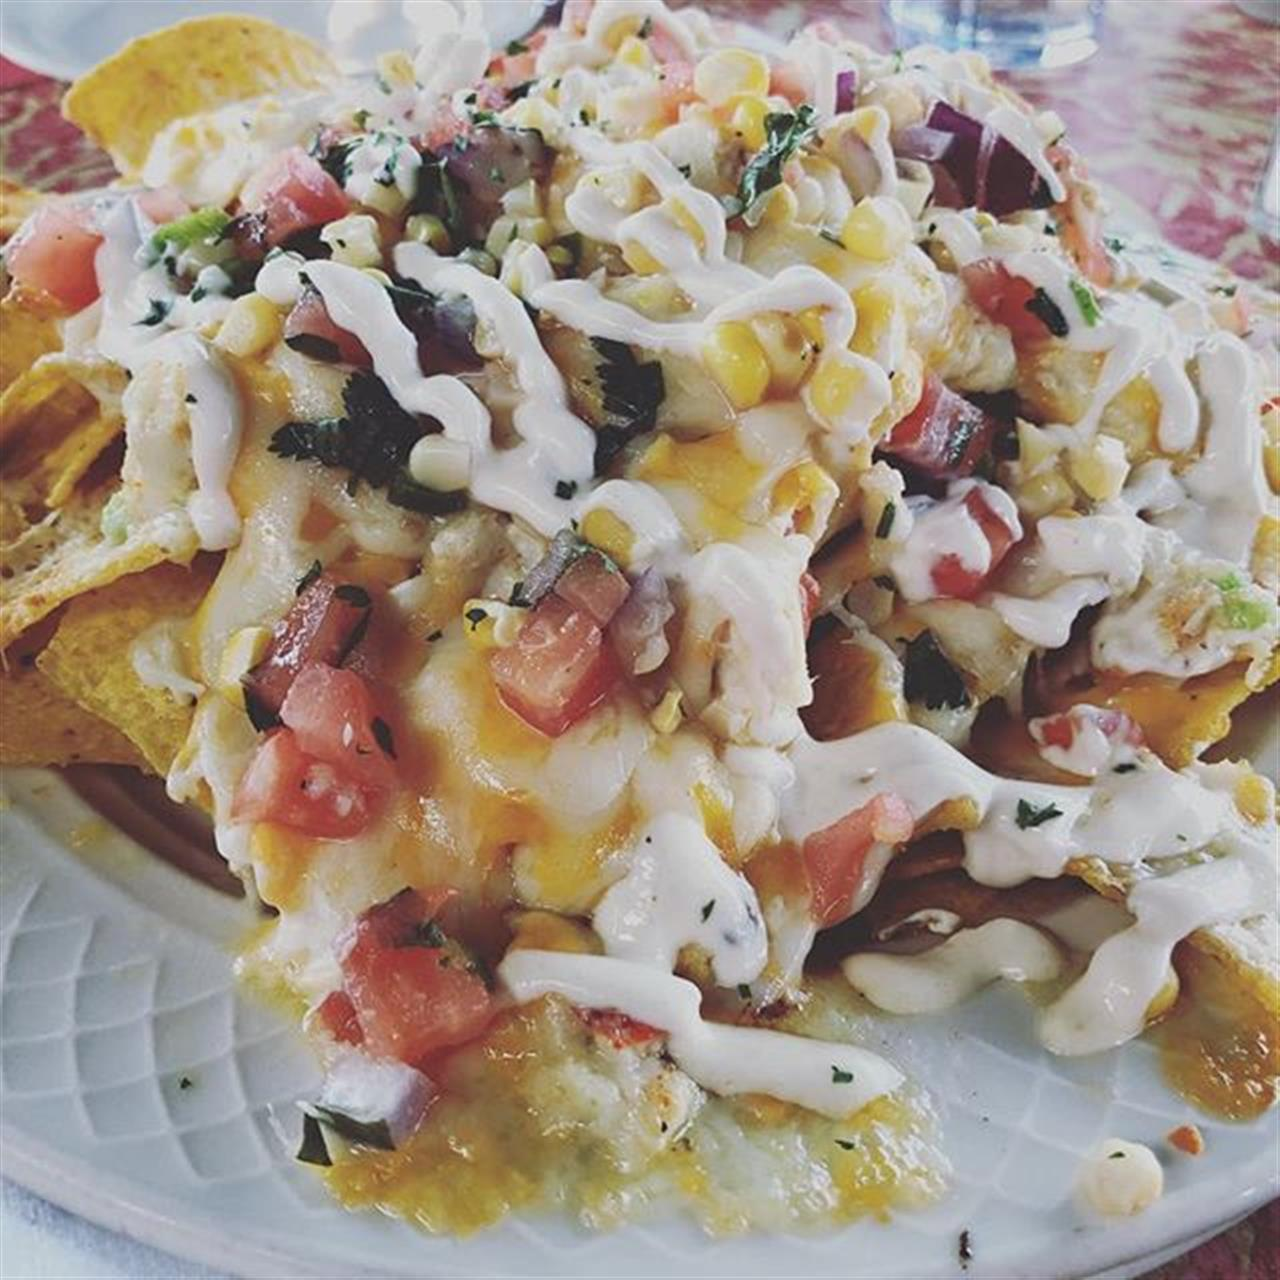 After a long day of #realestate and writing offers, its time to celebrate with lobster and crab nachos from @themerrickinn  #sharethelex #realtor #salliedavidsonrealtors #leadingre #realtorsgottaeat #foodie #lexky #delicious